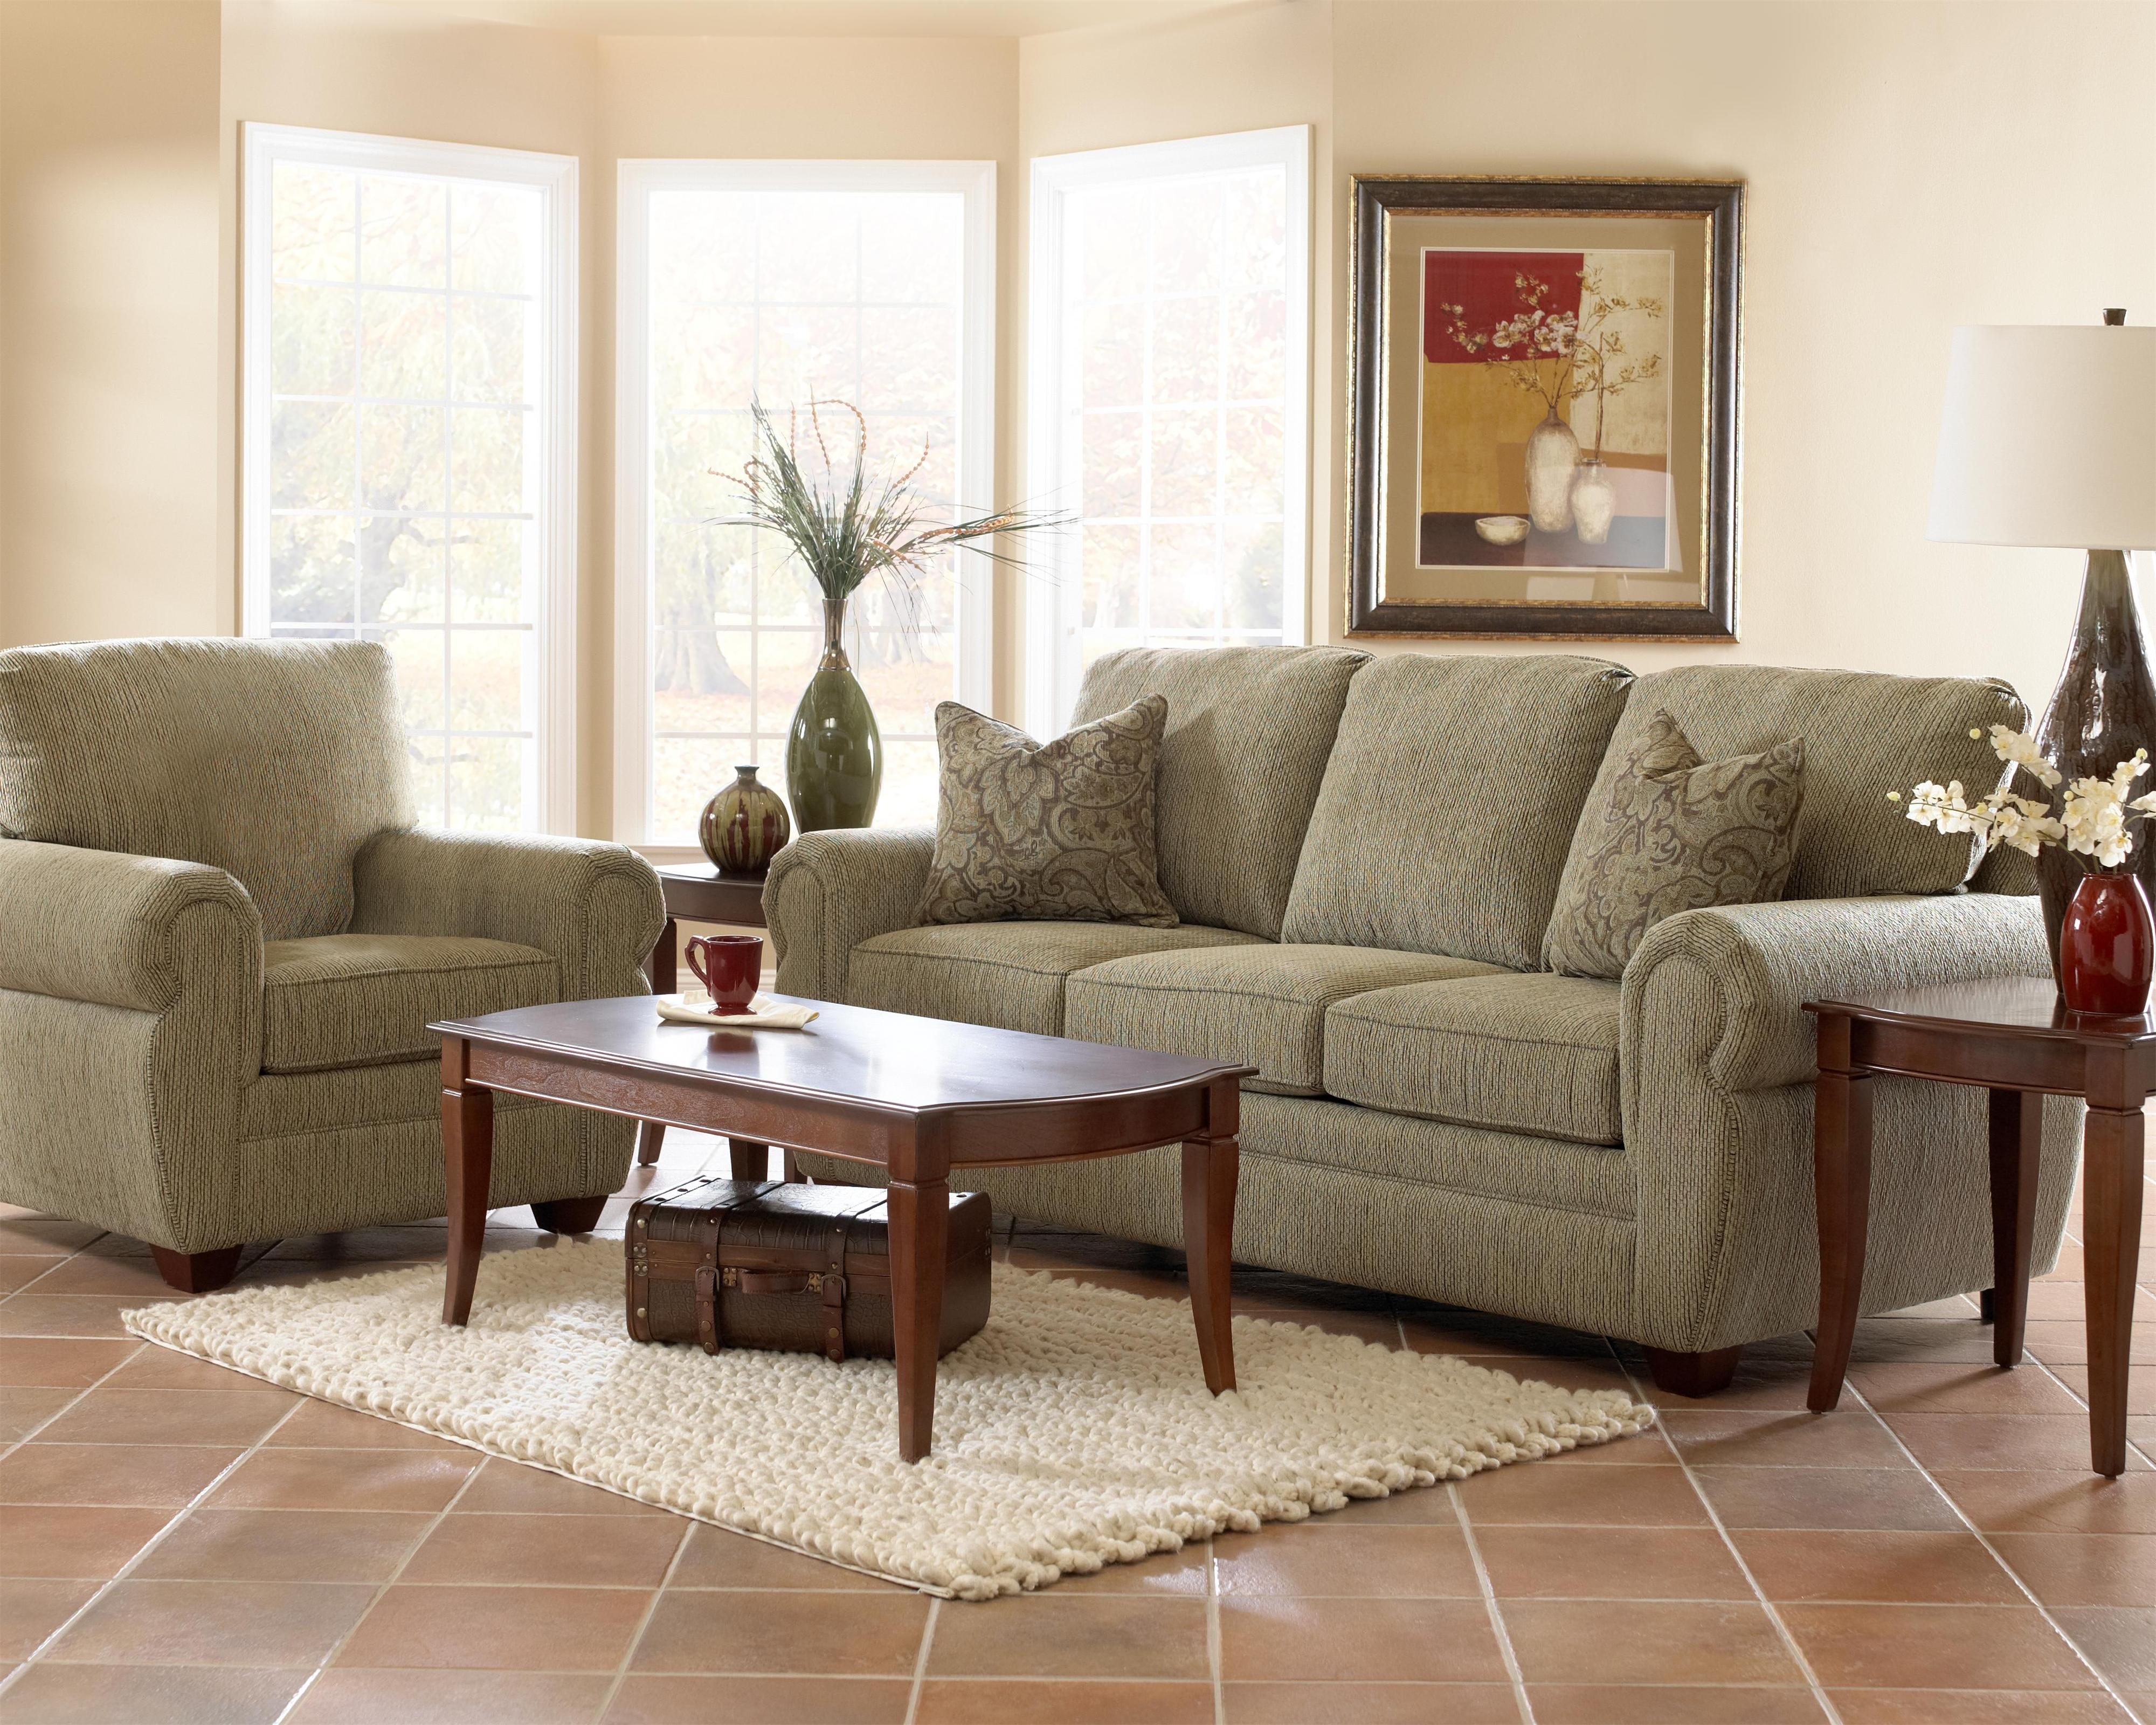 Westbrook Stationary Living Room Group by Klaussner at Van Hill Furniture